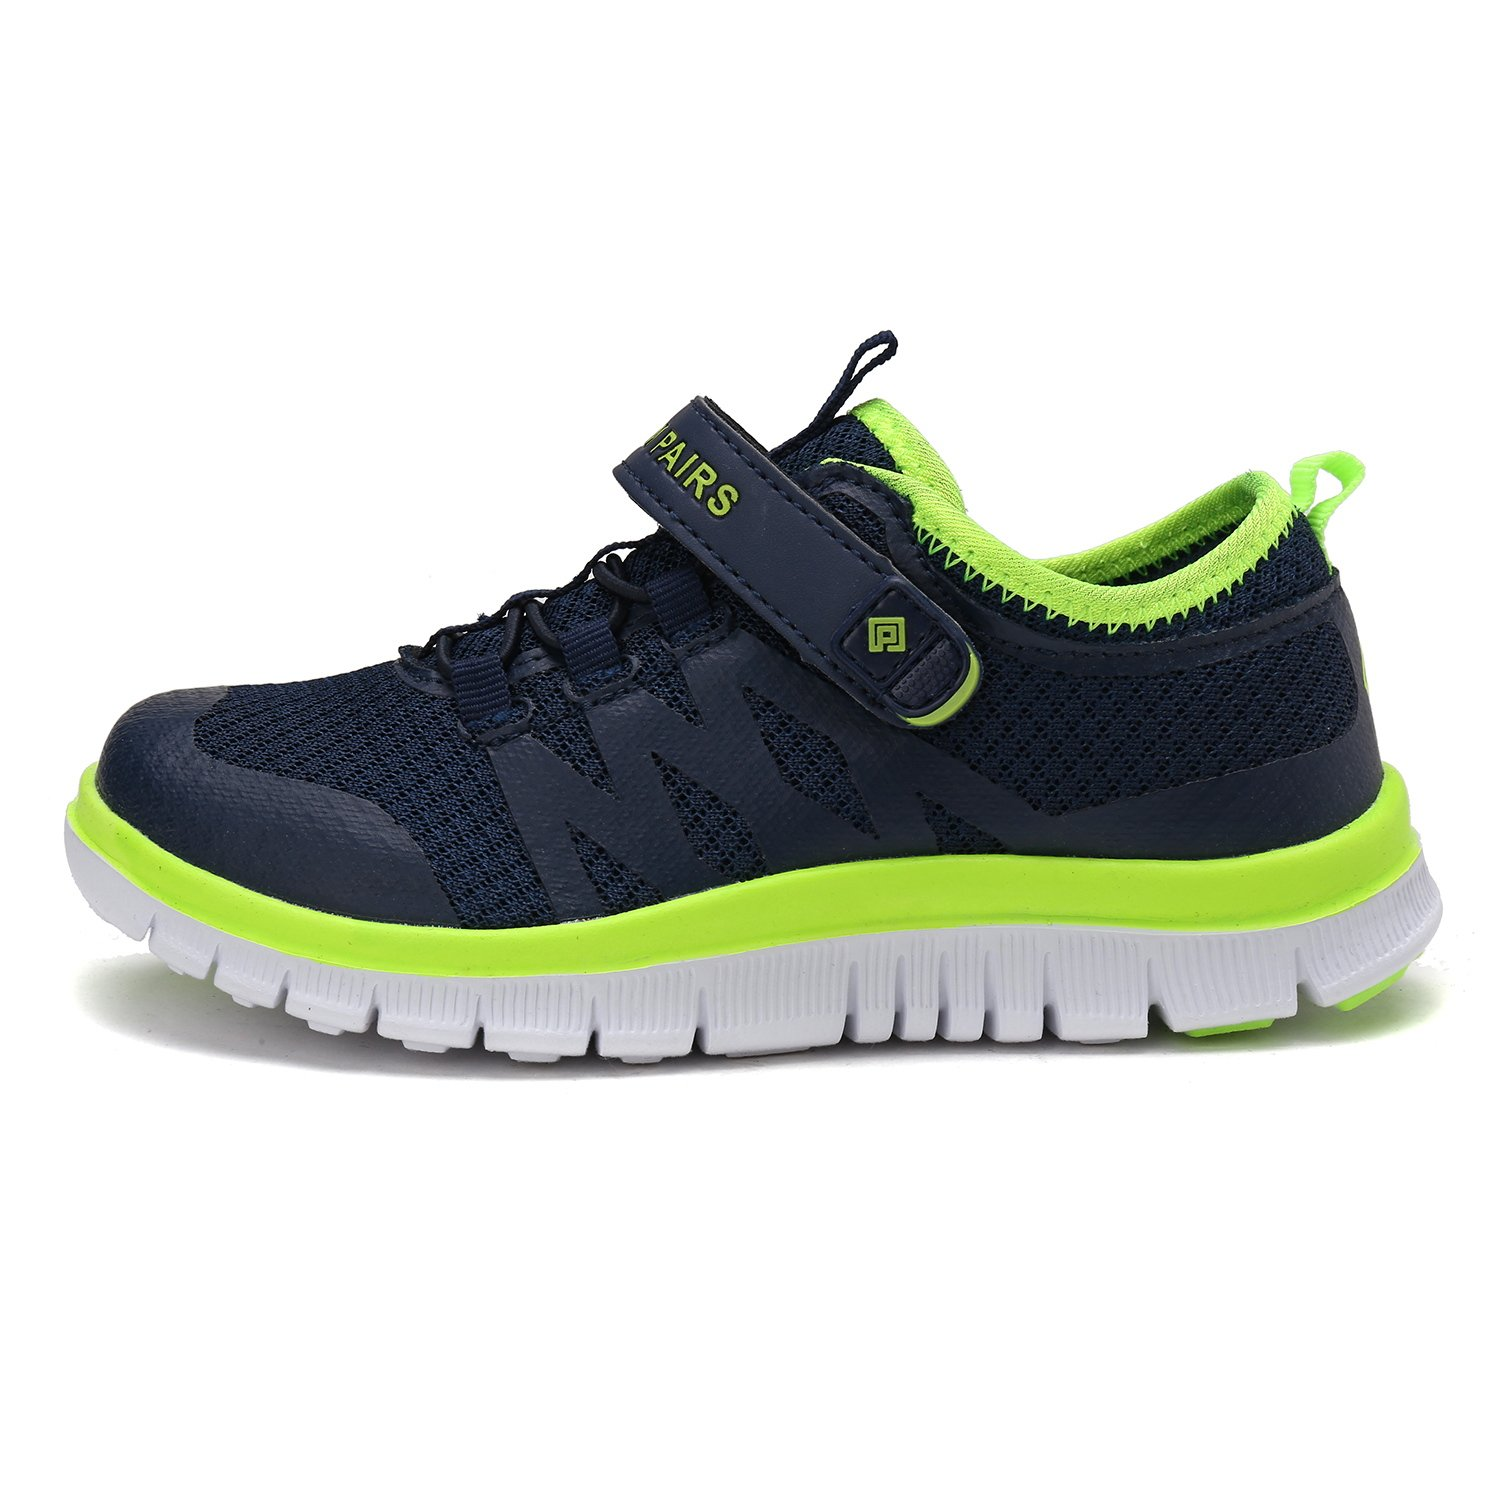 3ad8e593c Amazon.com | DREAM PAIRS Boys Girls Sneakers Casual Sports Running Shoes  for Toddler Little Kids Big Kids | Sneakers